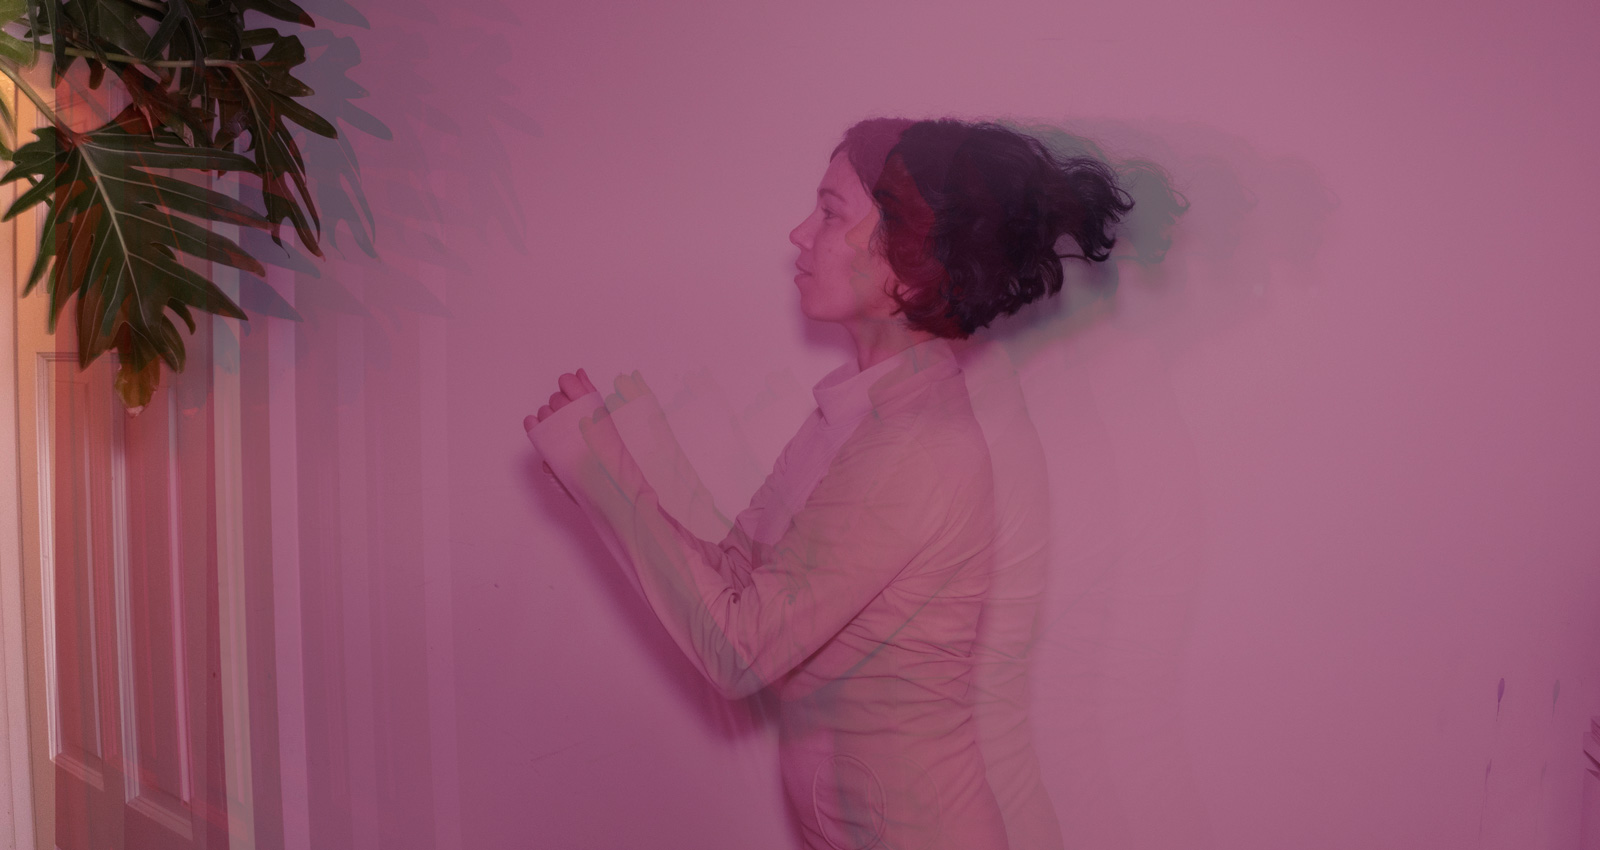 Kelly Lee Owens 'Inner Song' album out today